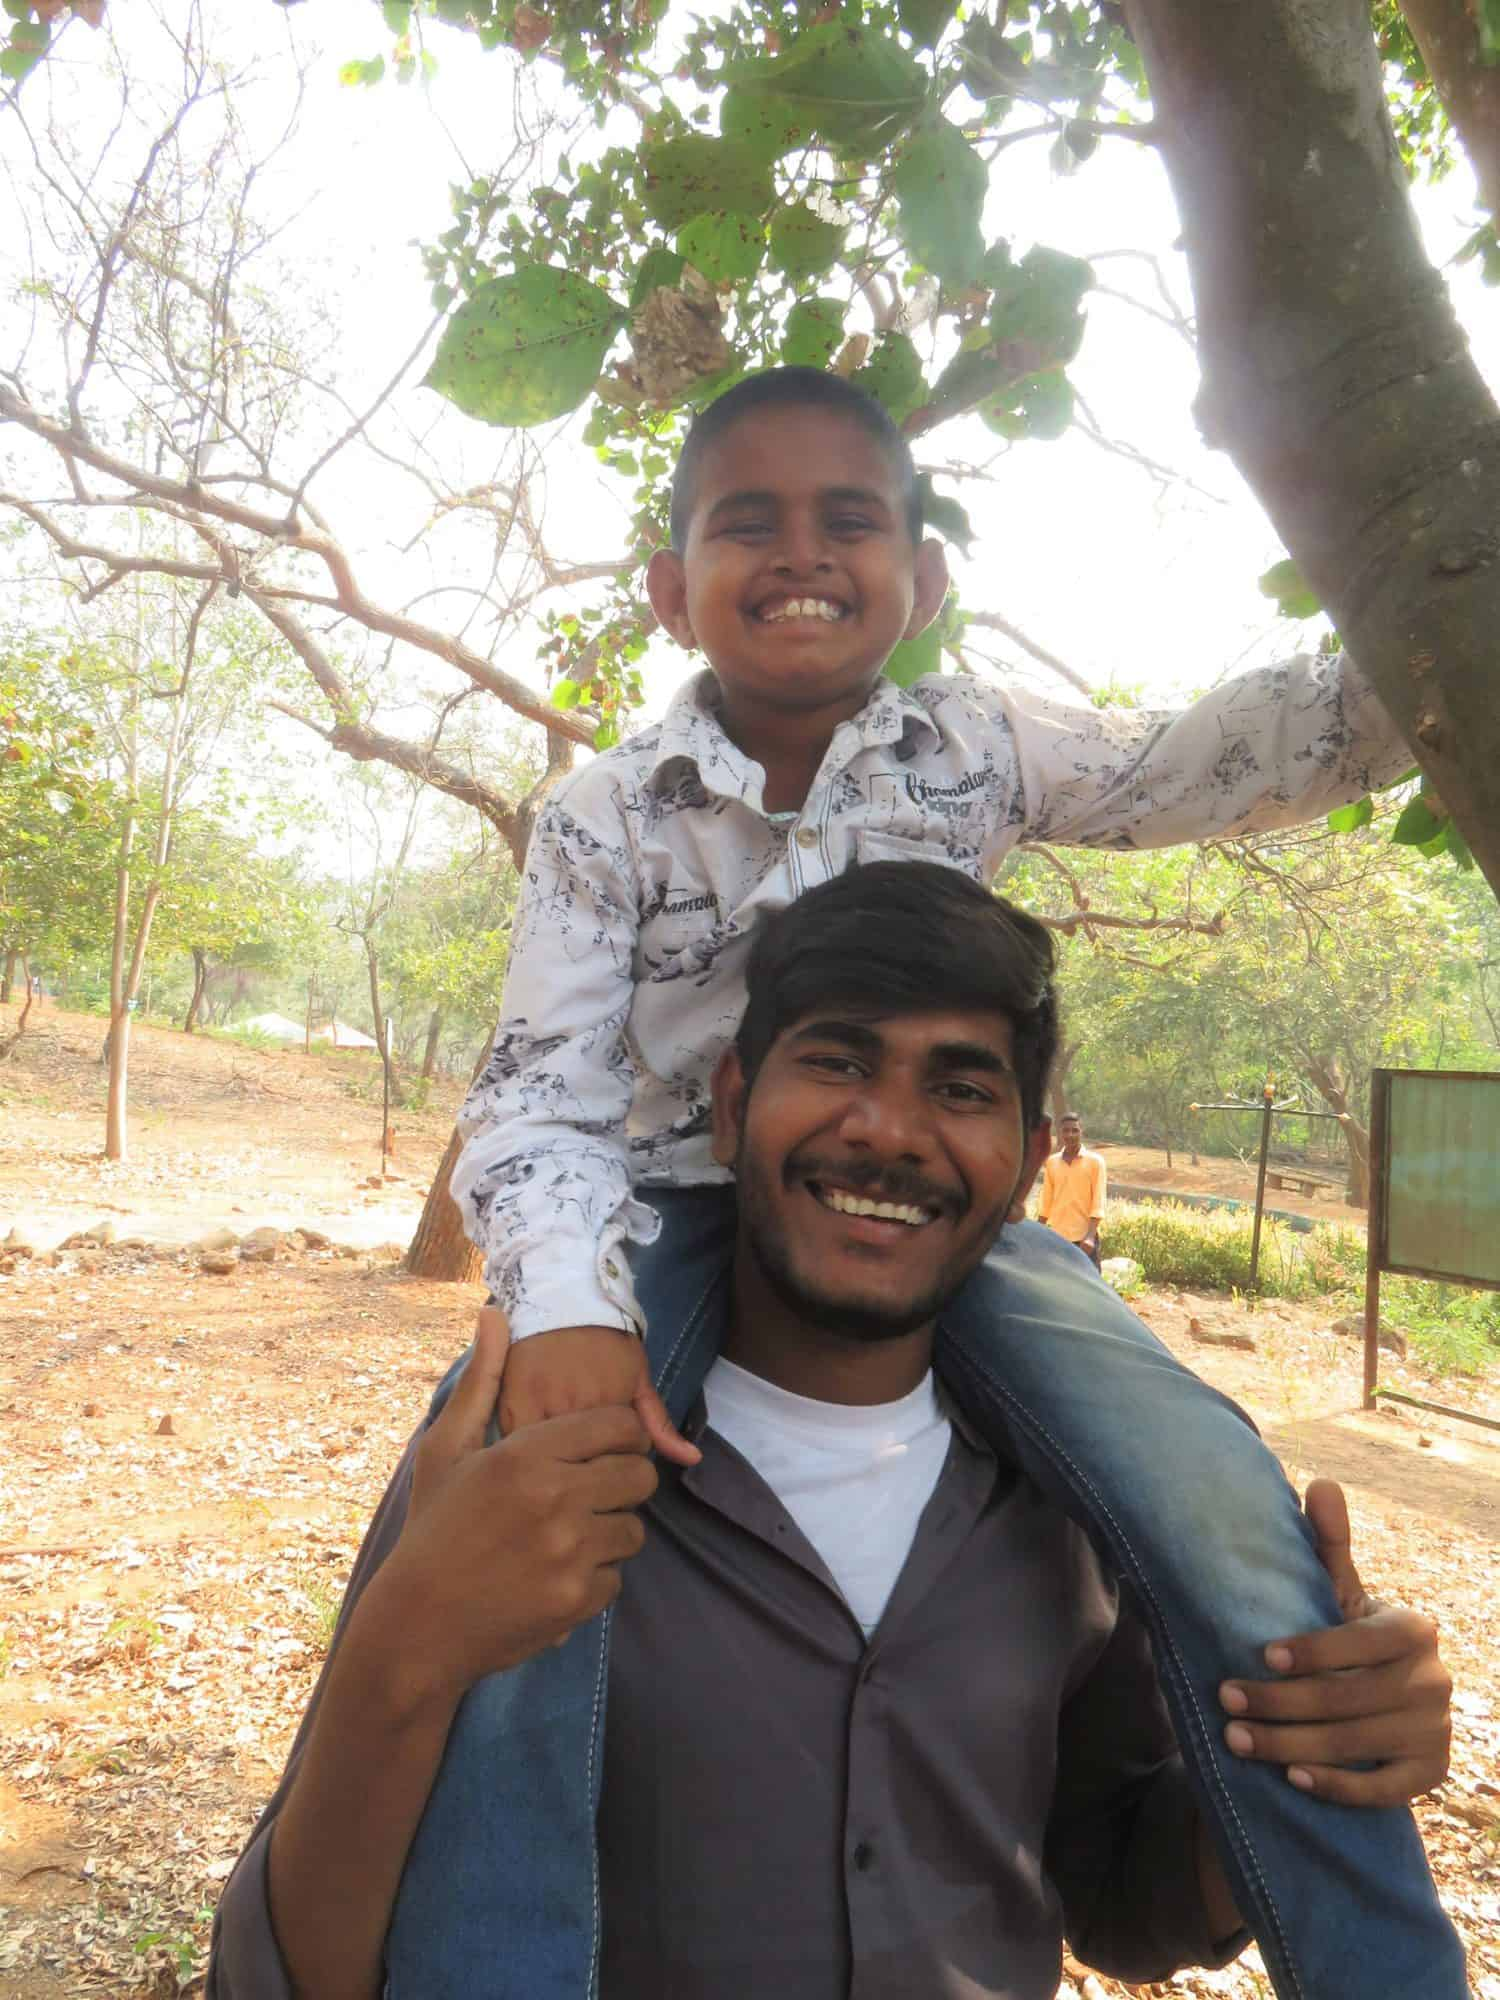 A young boy on the shoulders of a man outside in India